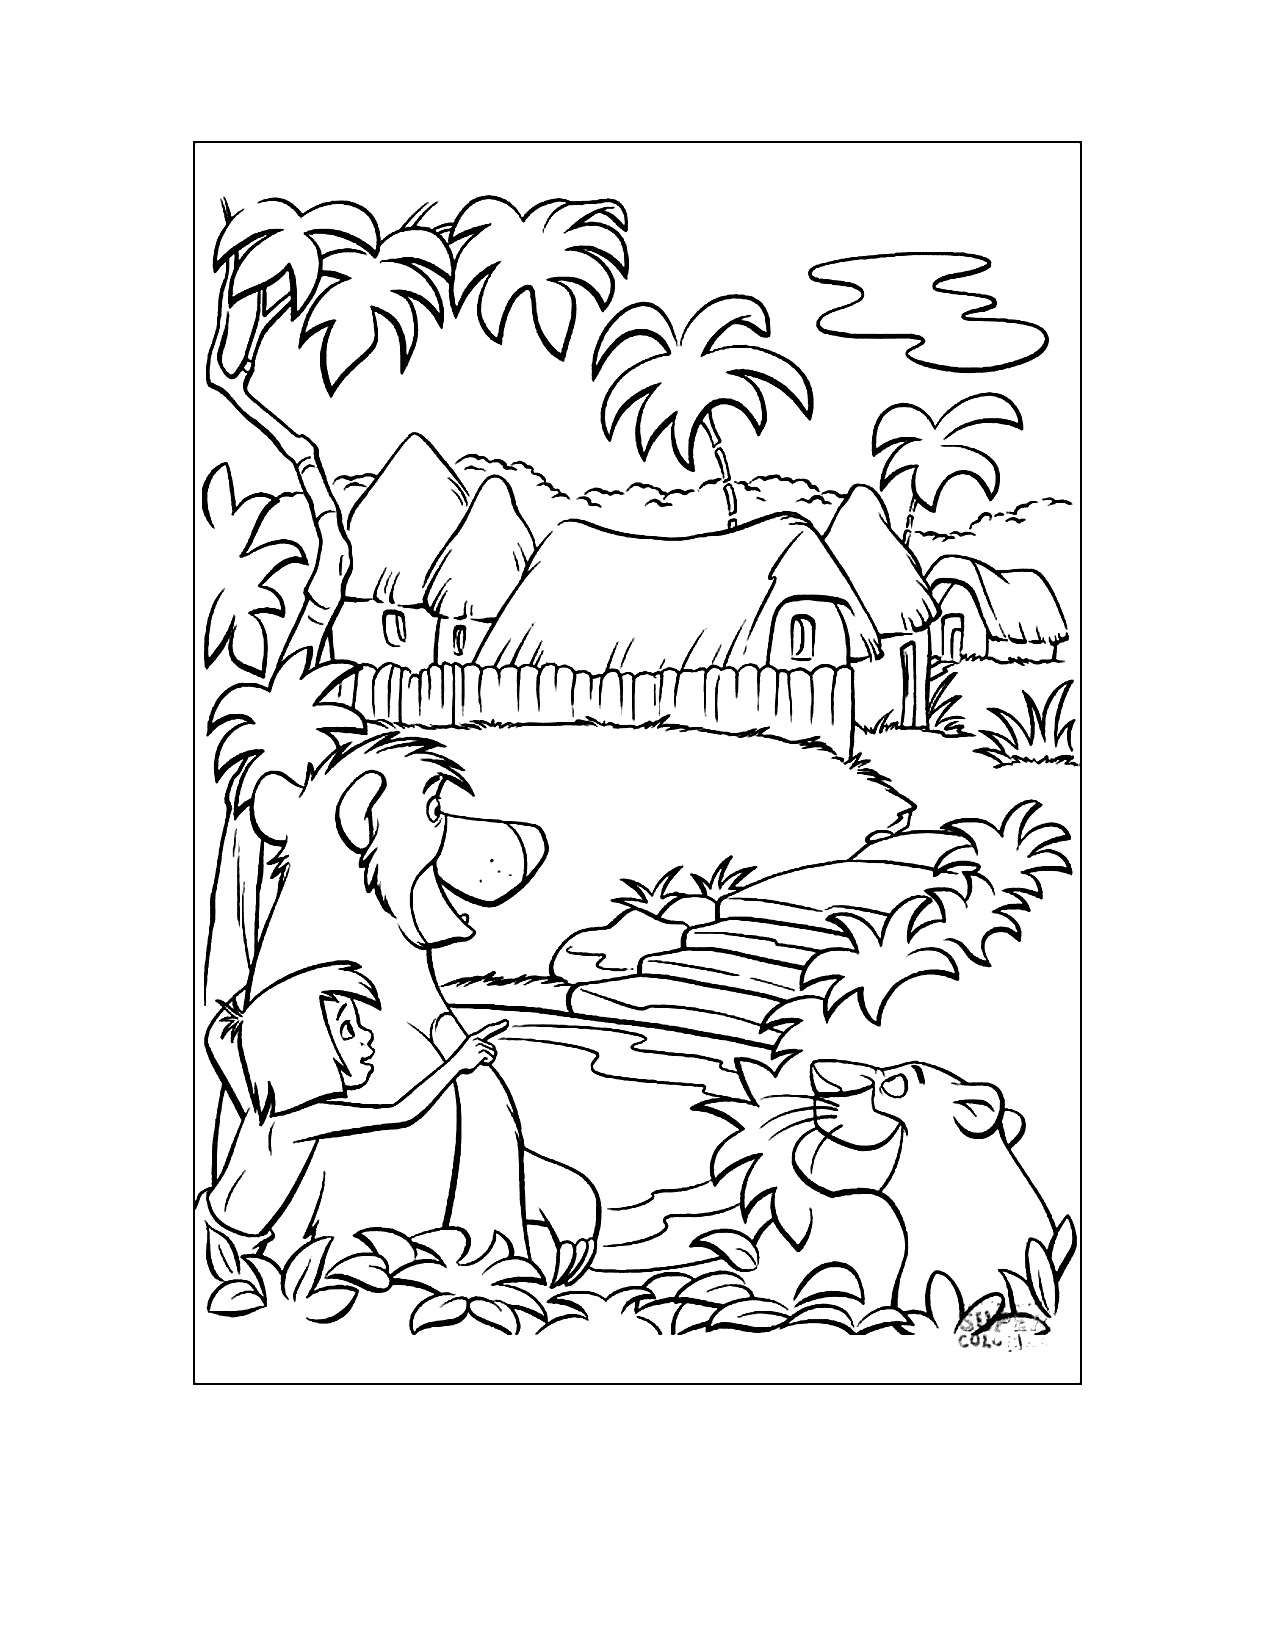 Jungle Book Man Village Coloring Page